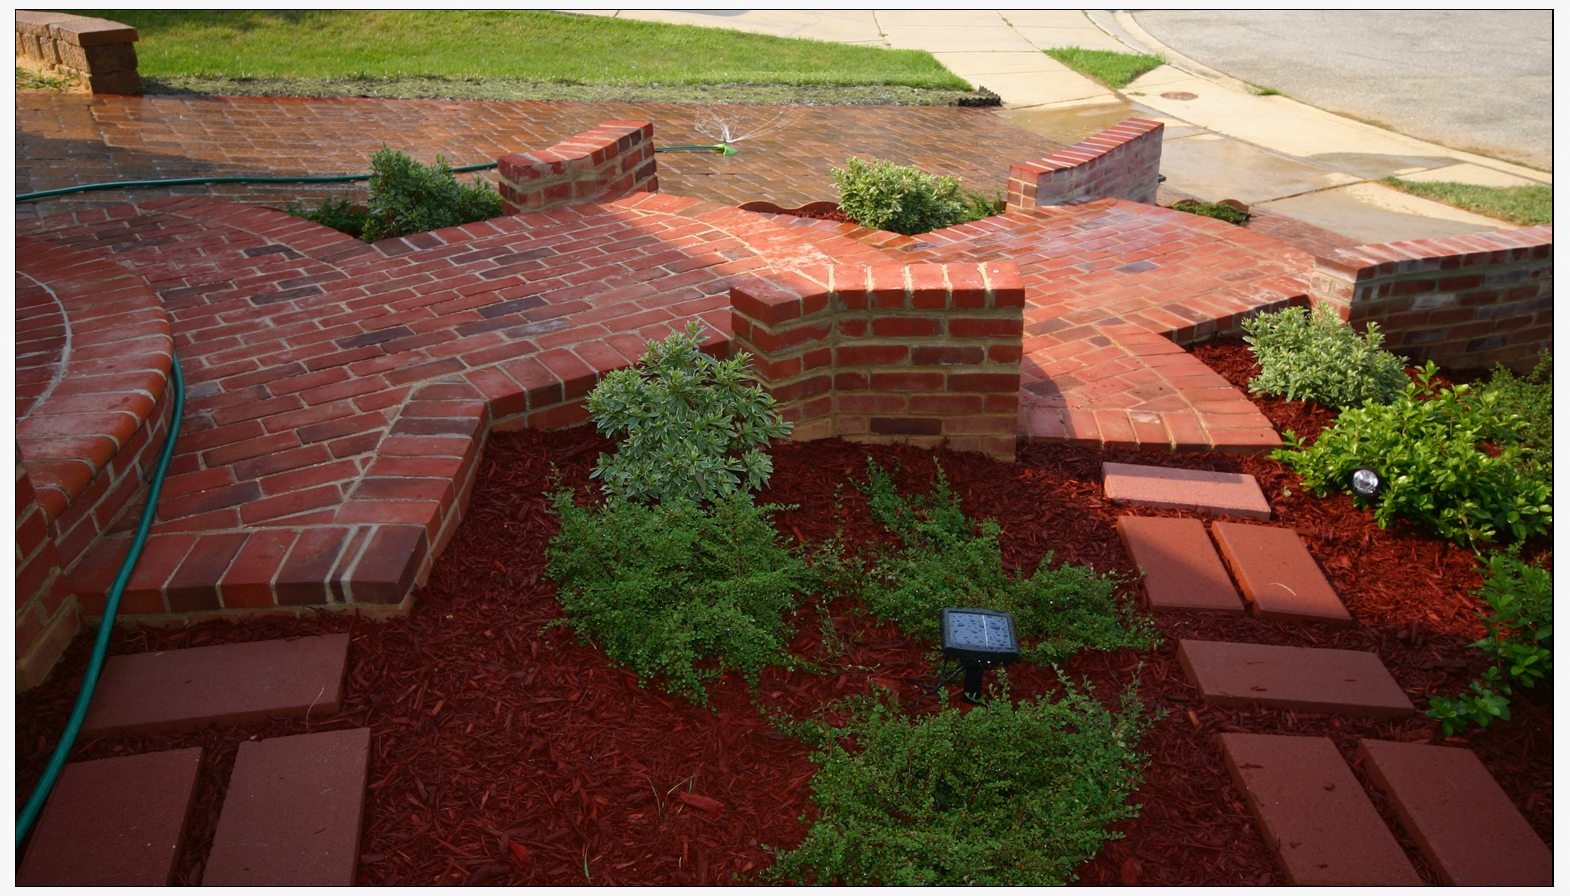 Landscaping With Mulch Pictures : Landscape mulch and shrubs